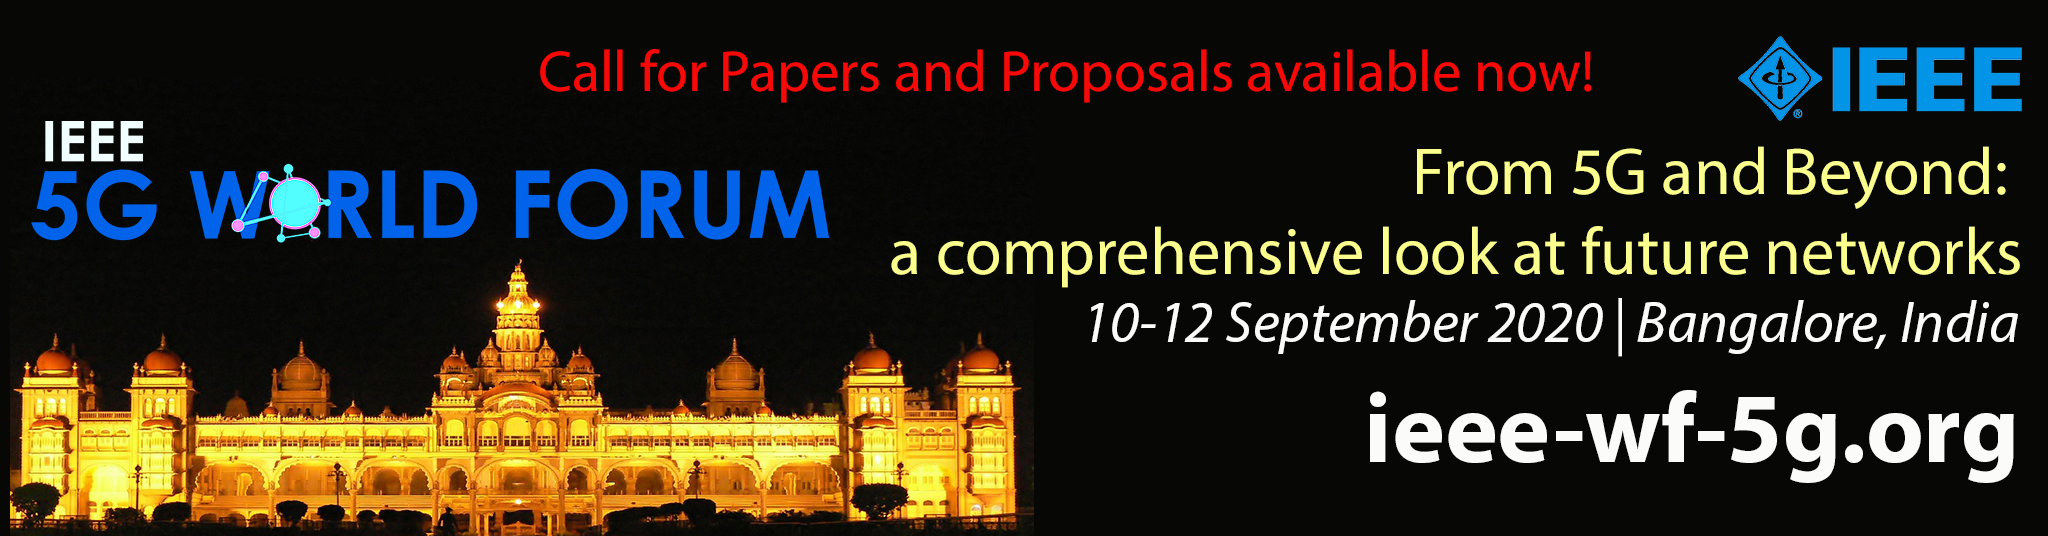 IEEE 5G World Forum Call for Papers and Proposals